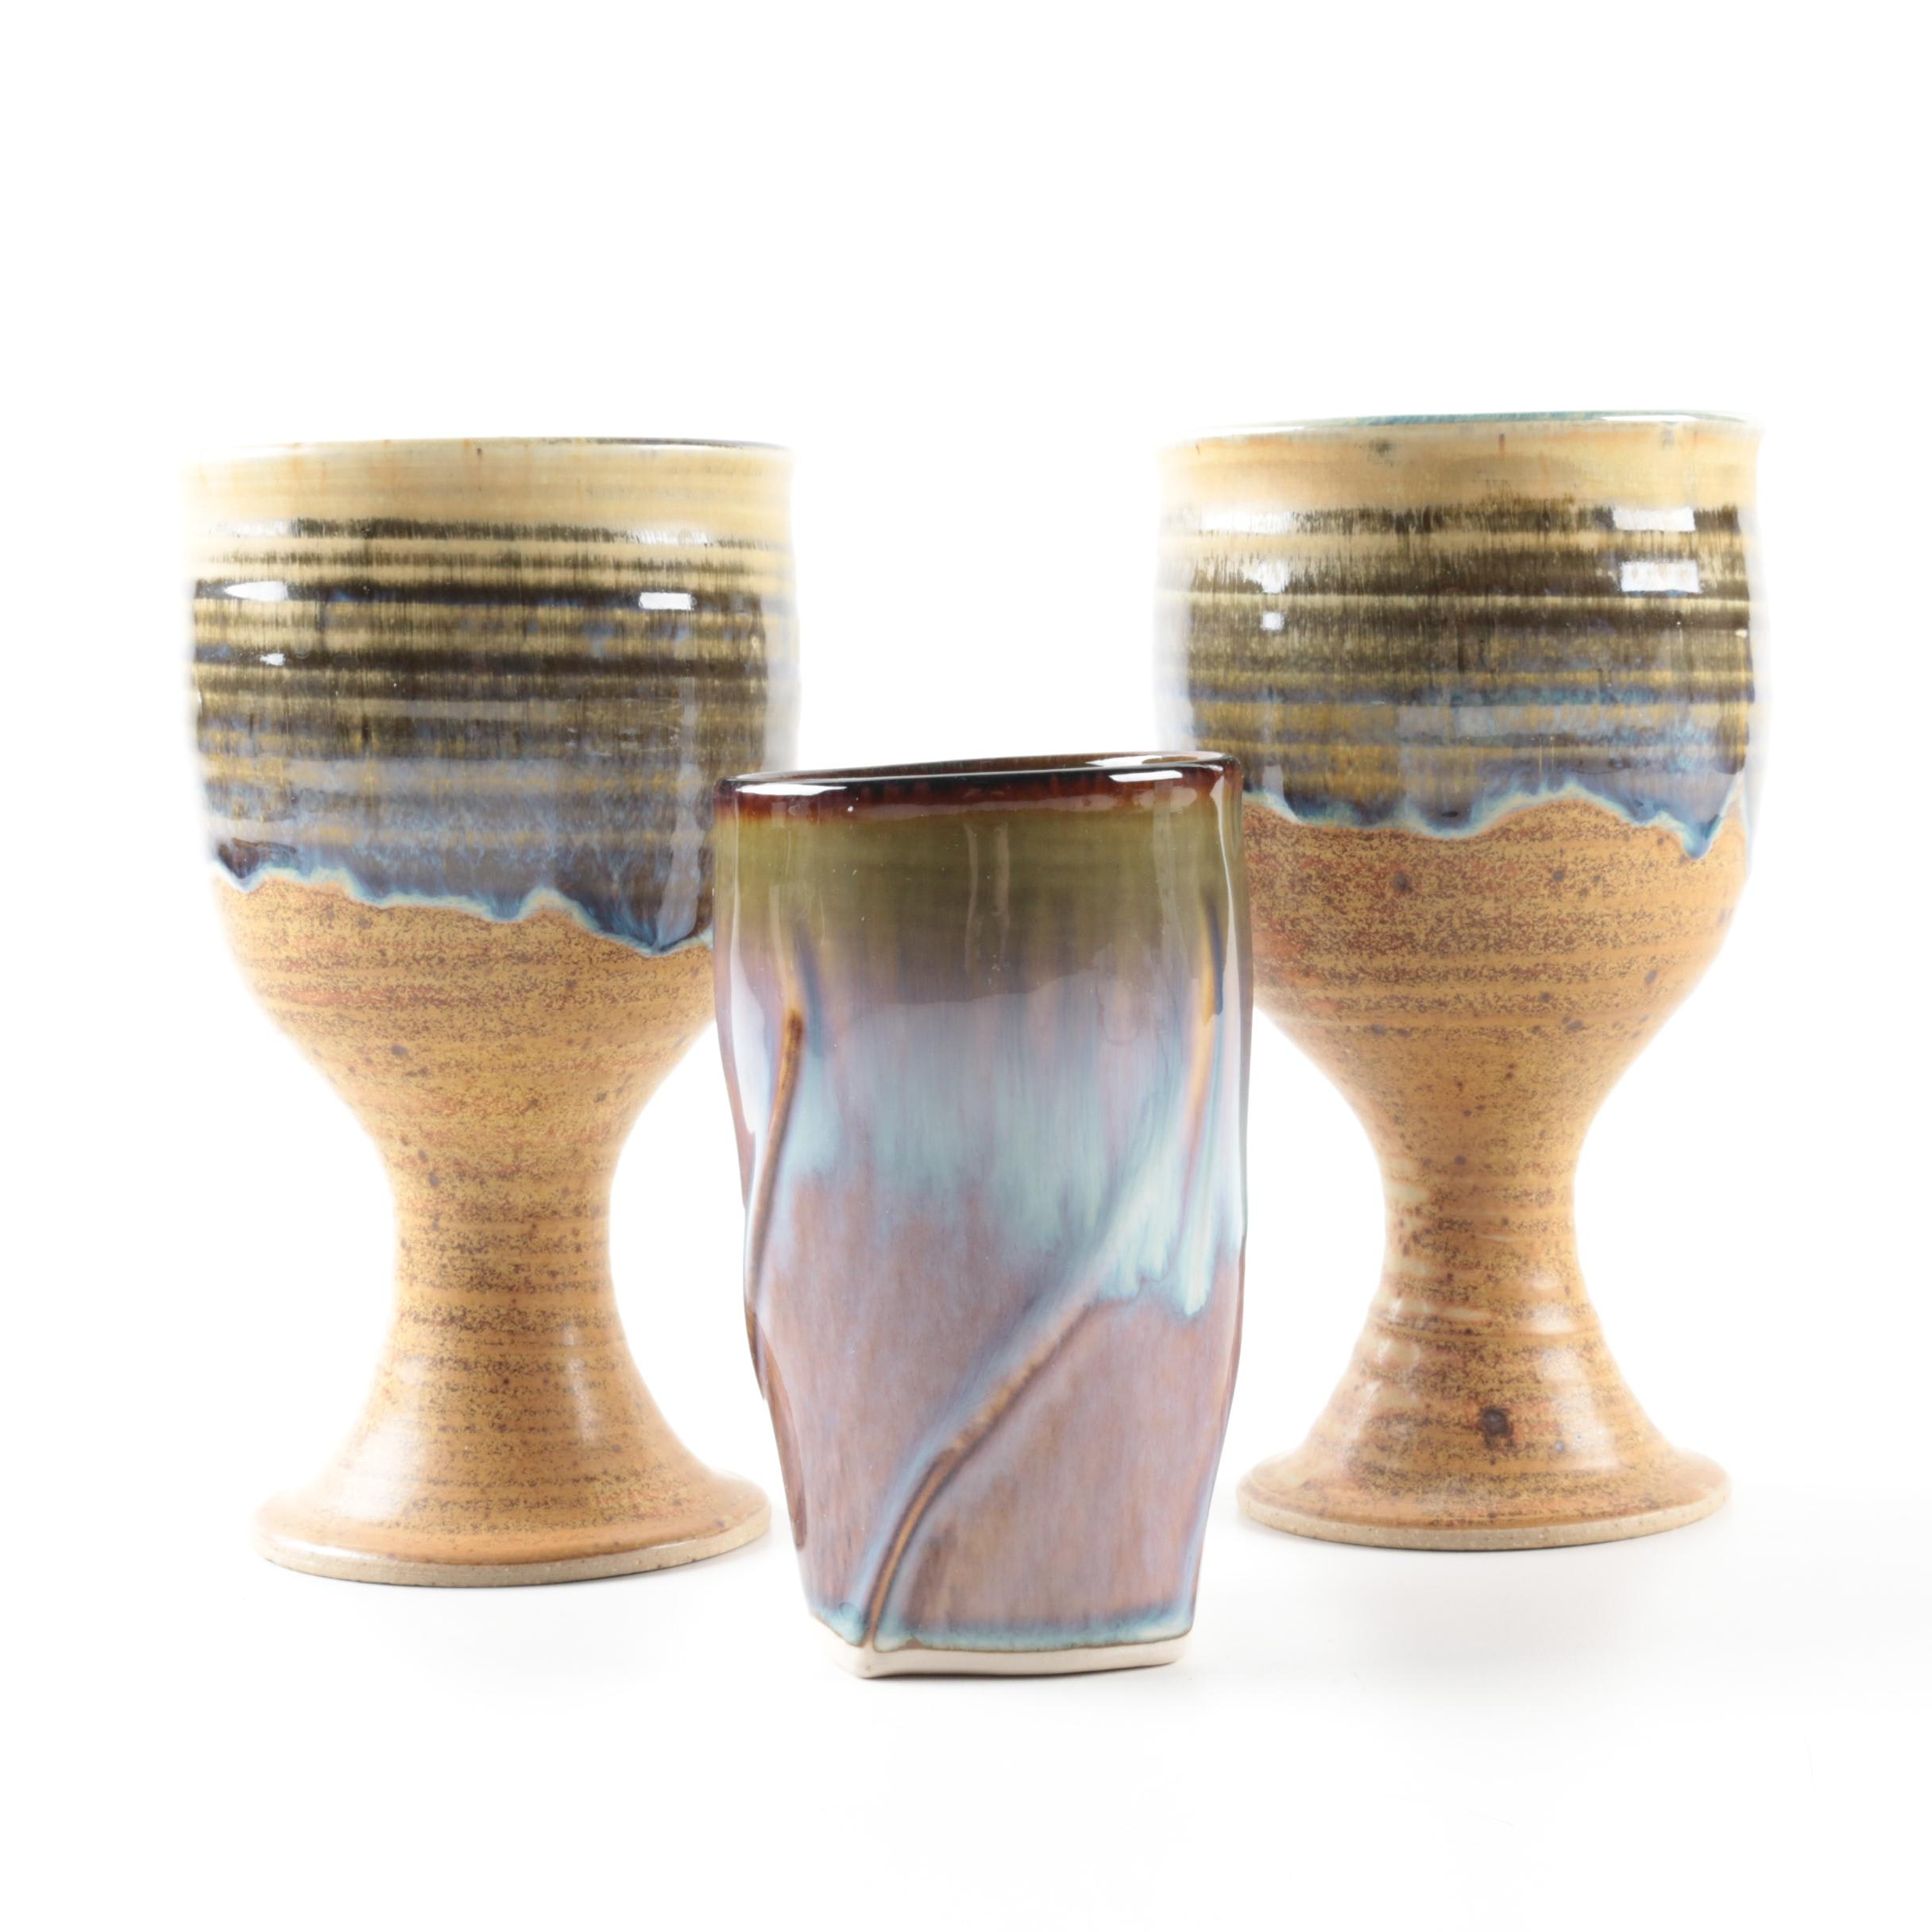 Art Pottery Chalices and a Cup